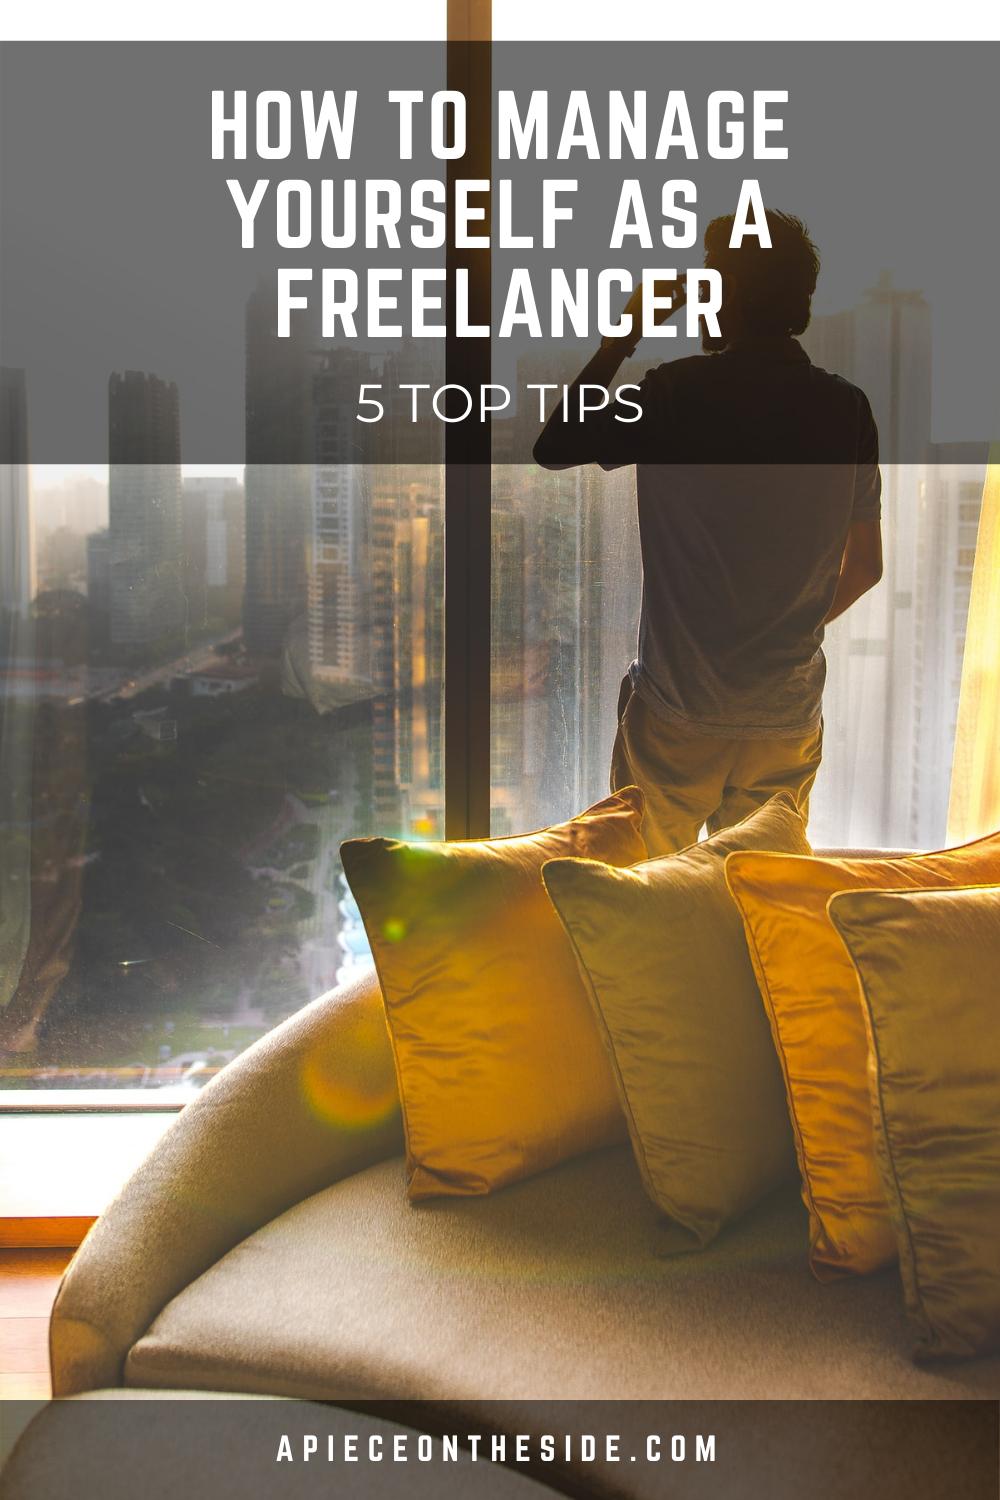 How To Manage Yourself As A Freelancer